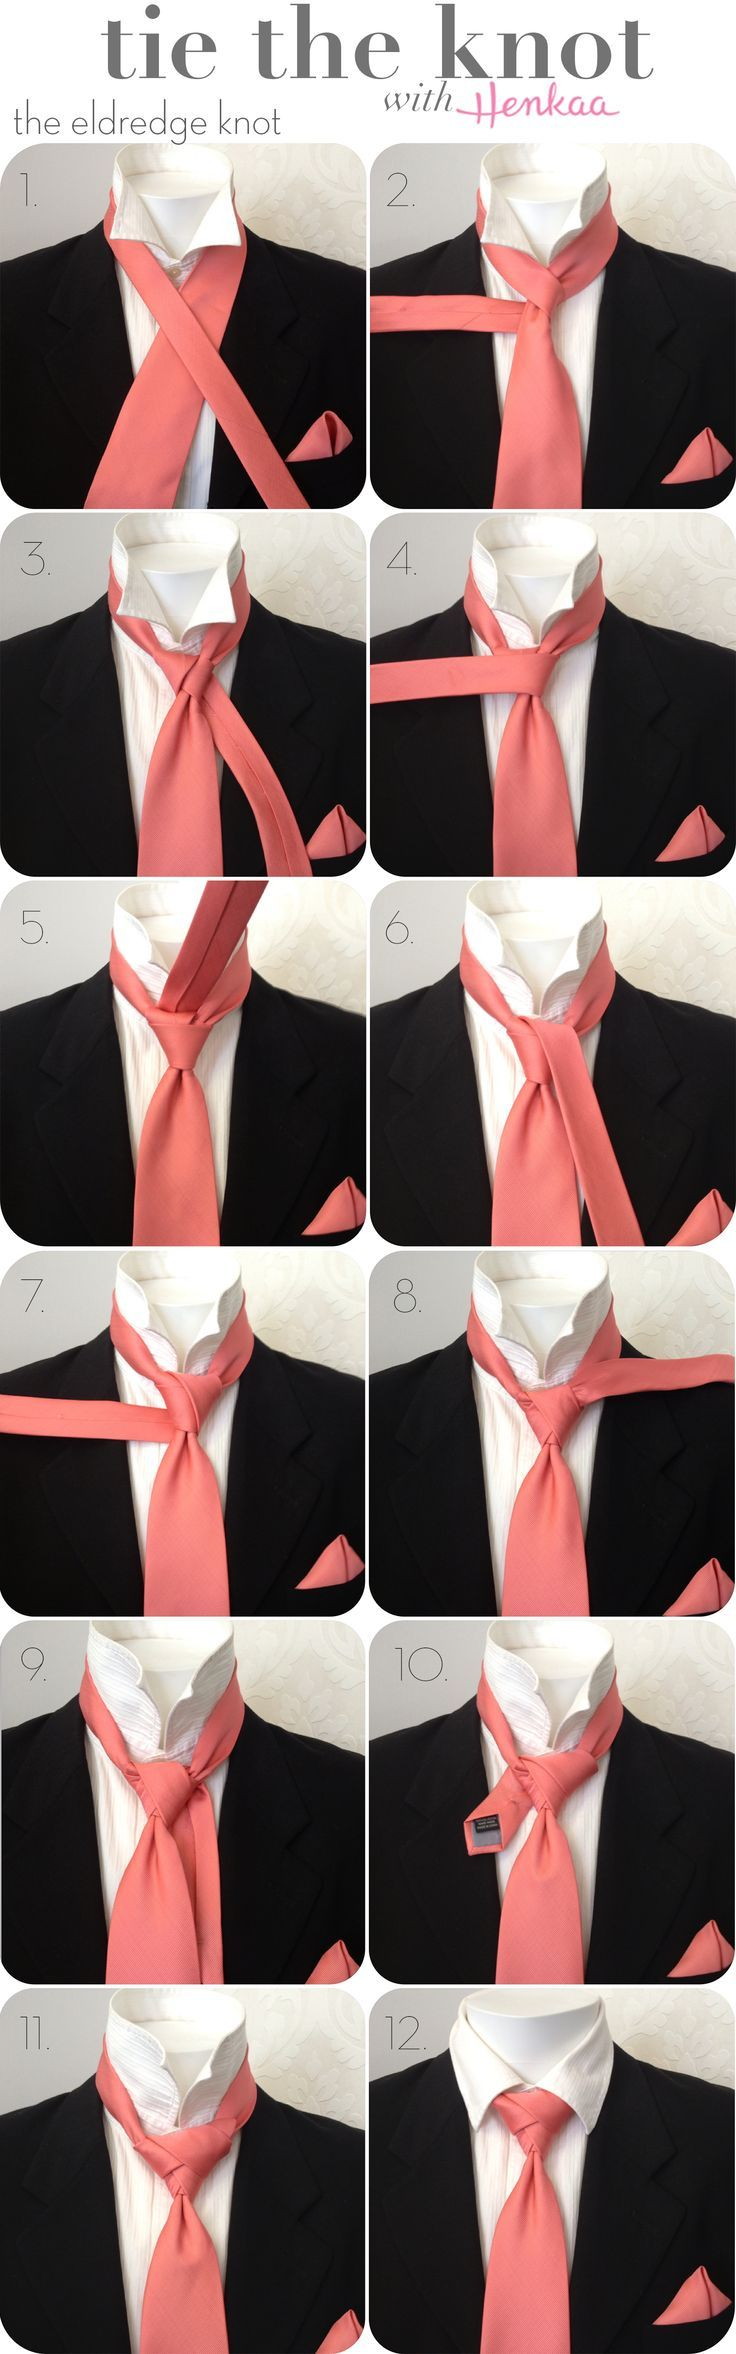 The Eldredge Knot